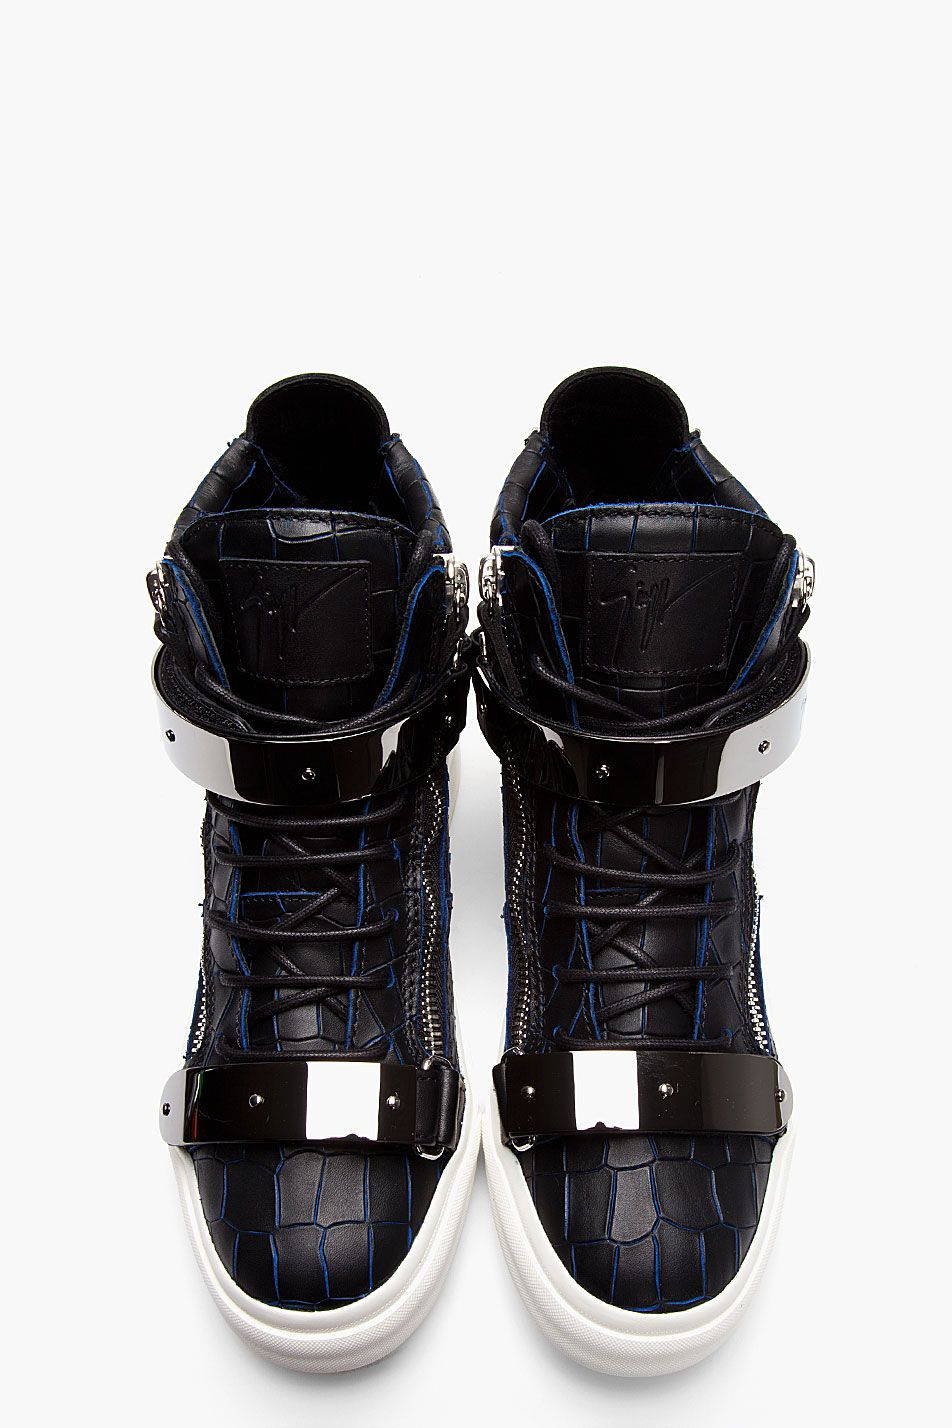 GIUSEPPE ZANOTTI - Black and navy croc-embossed leather London high-tops  High top leather sneakers in black with navy blue edging at seams  throughout.